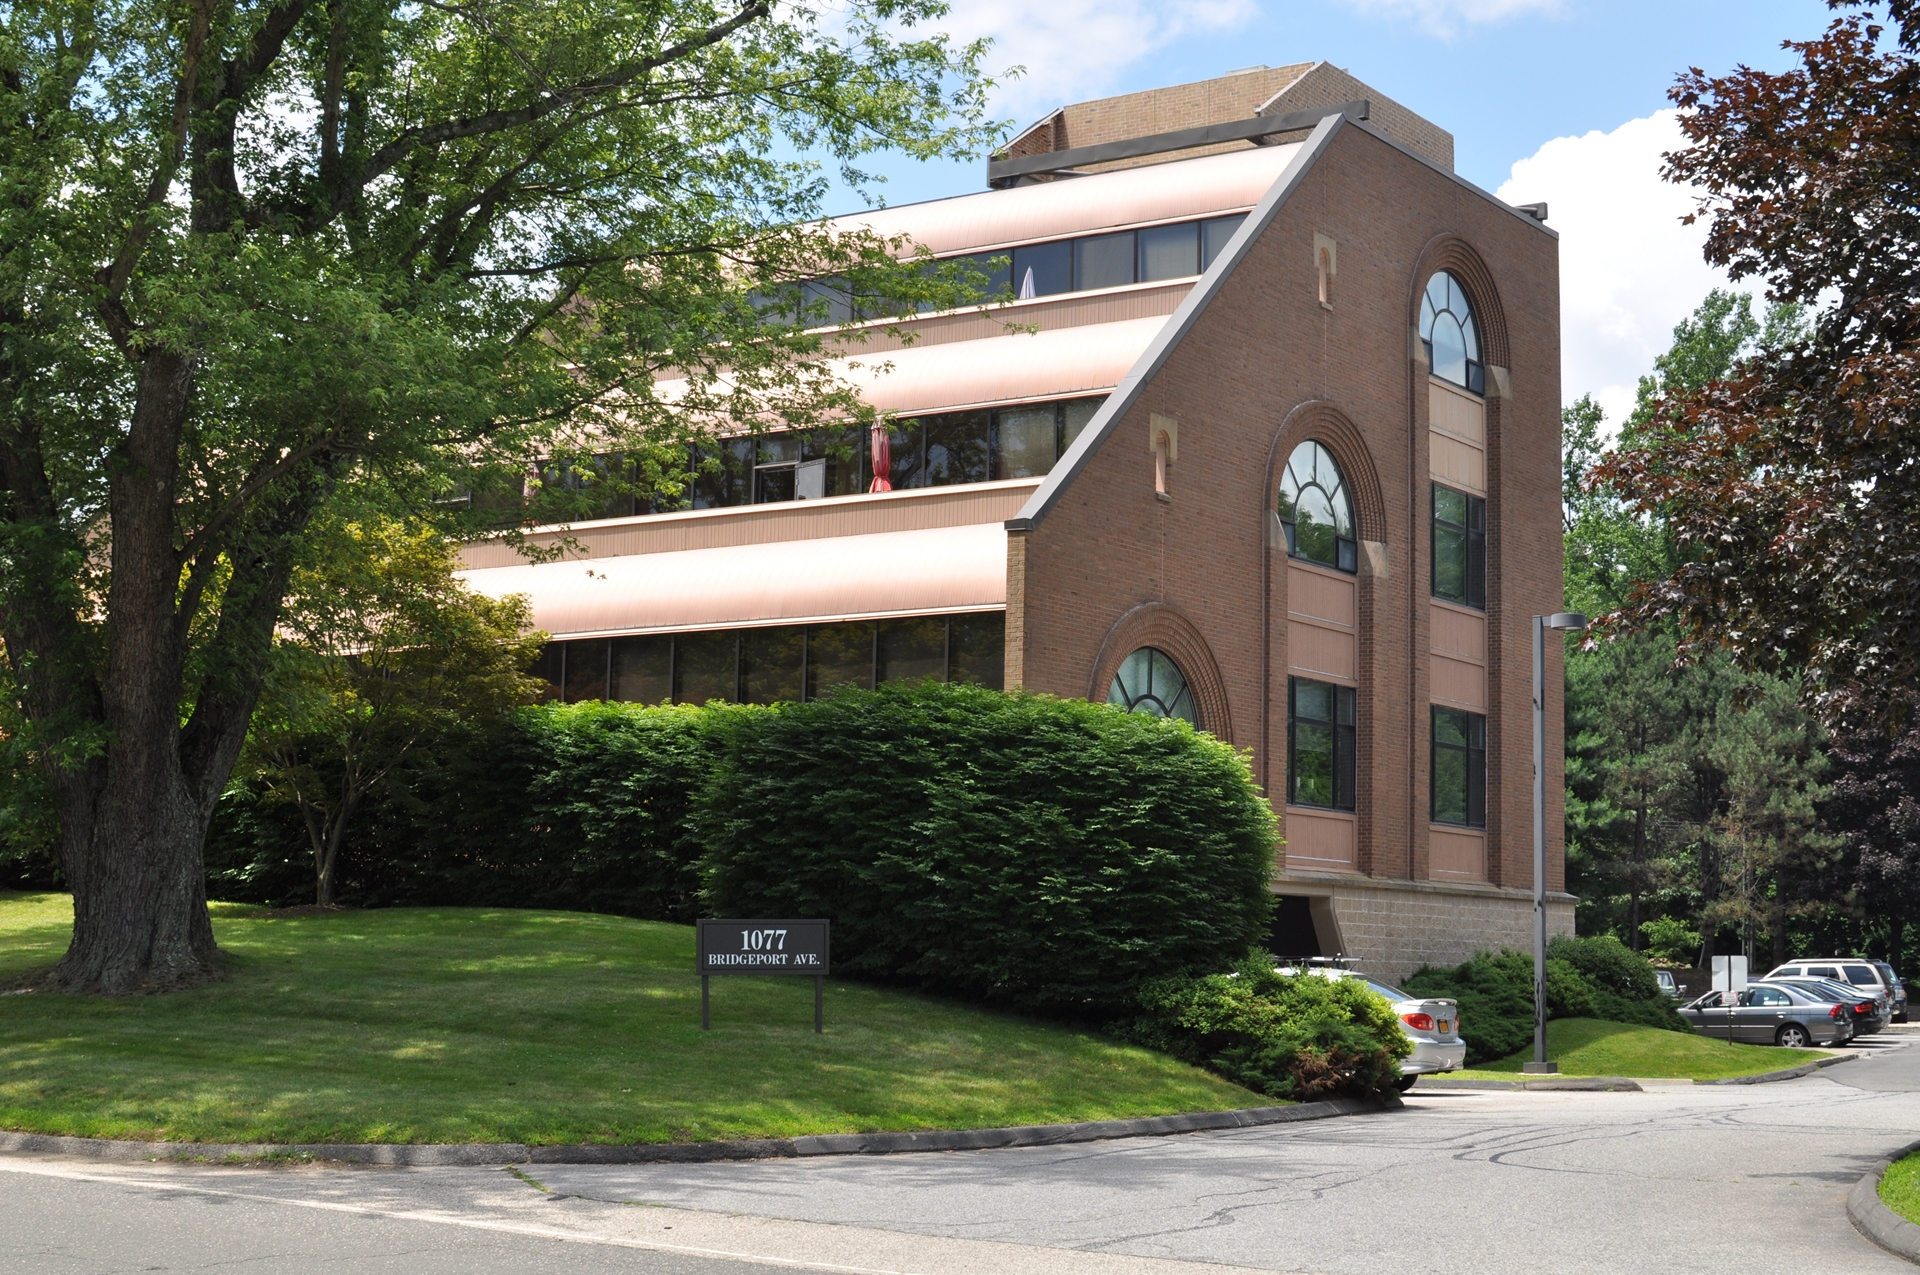 New England Low Vision & Blindness Announces New Location in Shelton, CT News